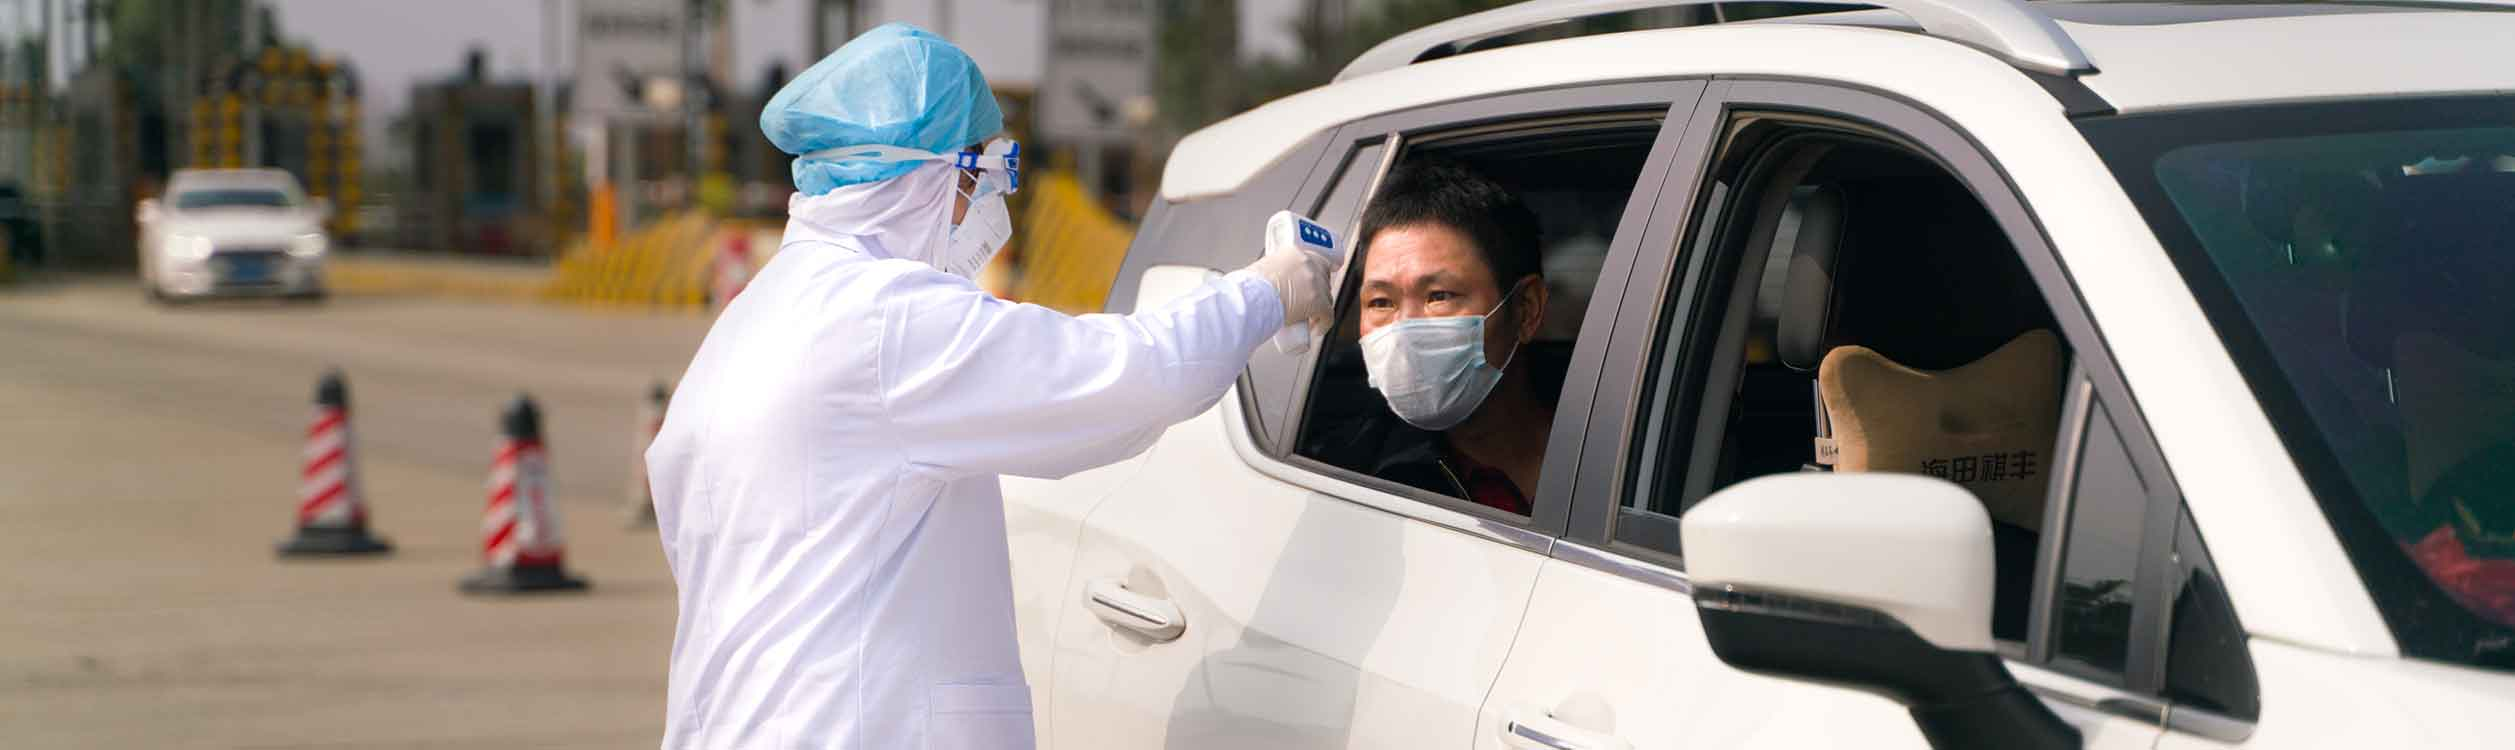 A coronavirus checkpoint in China on the highway. Doctors are checking the temperature of a passenger.